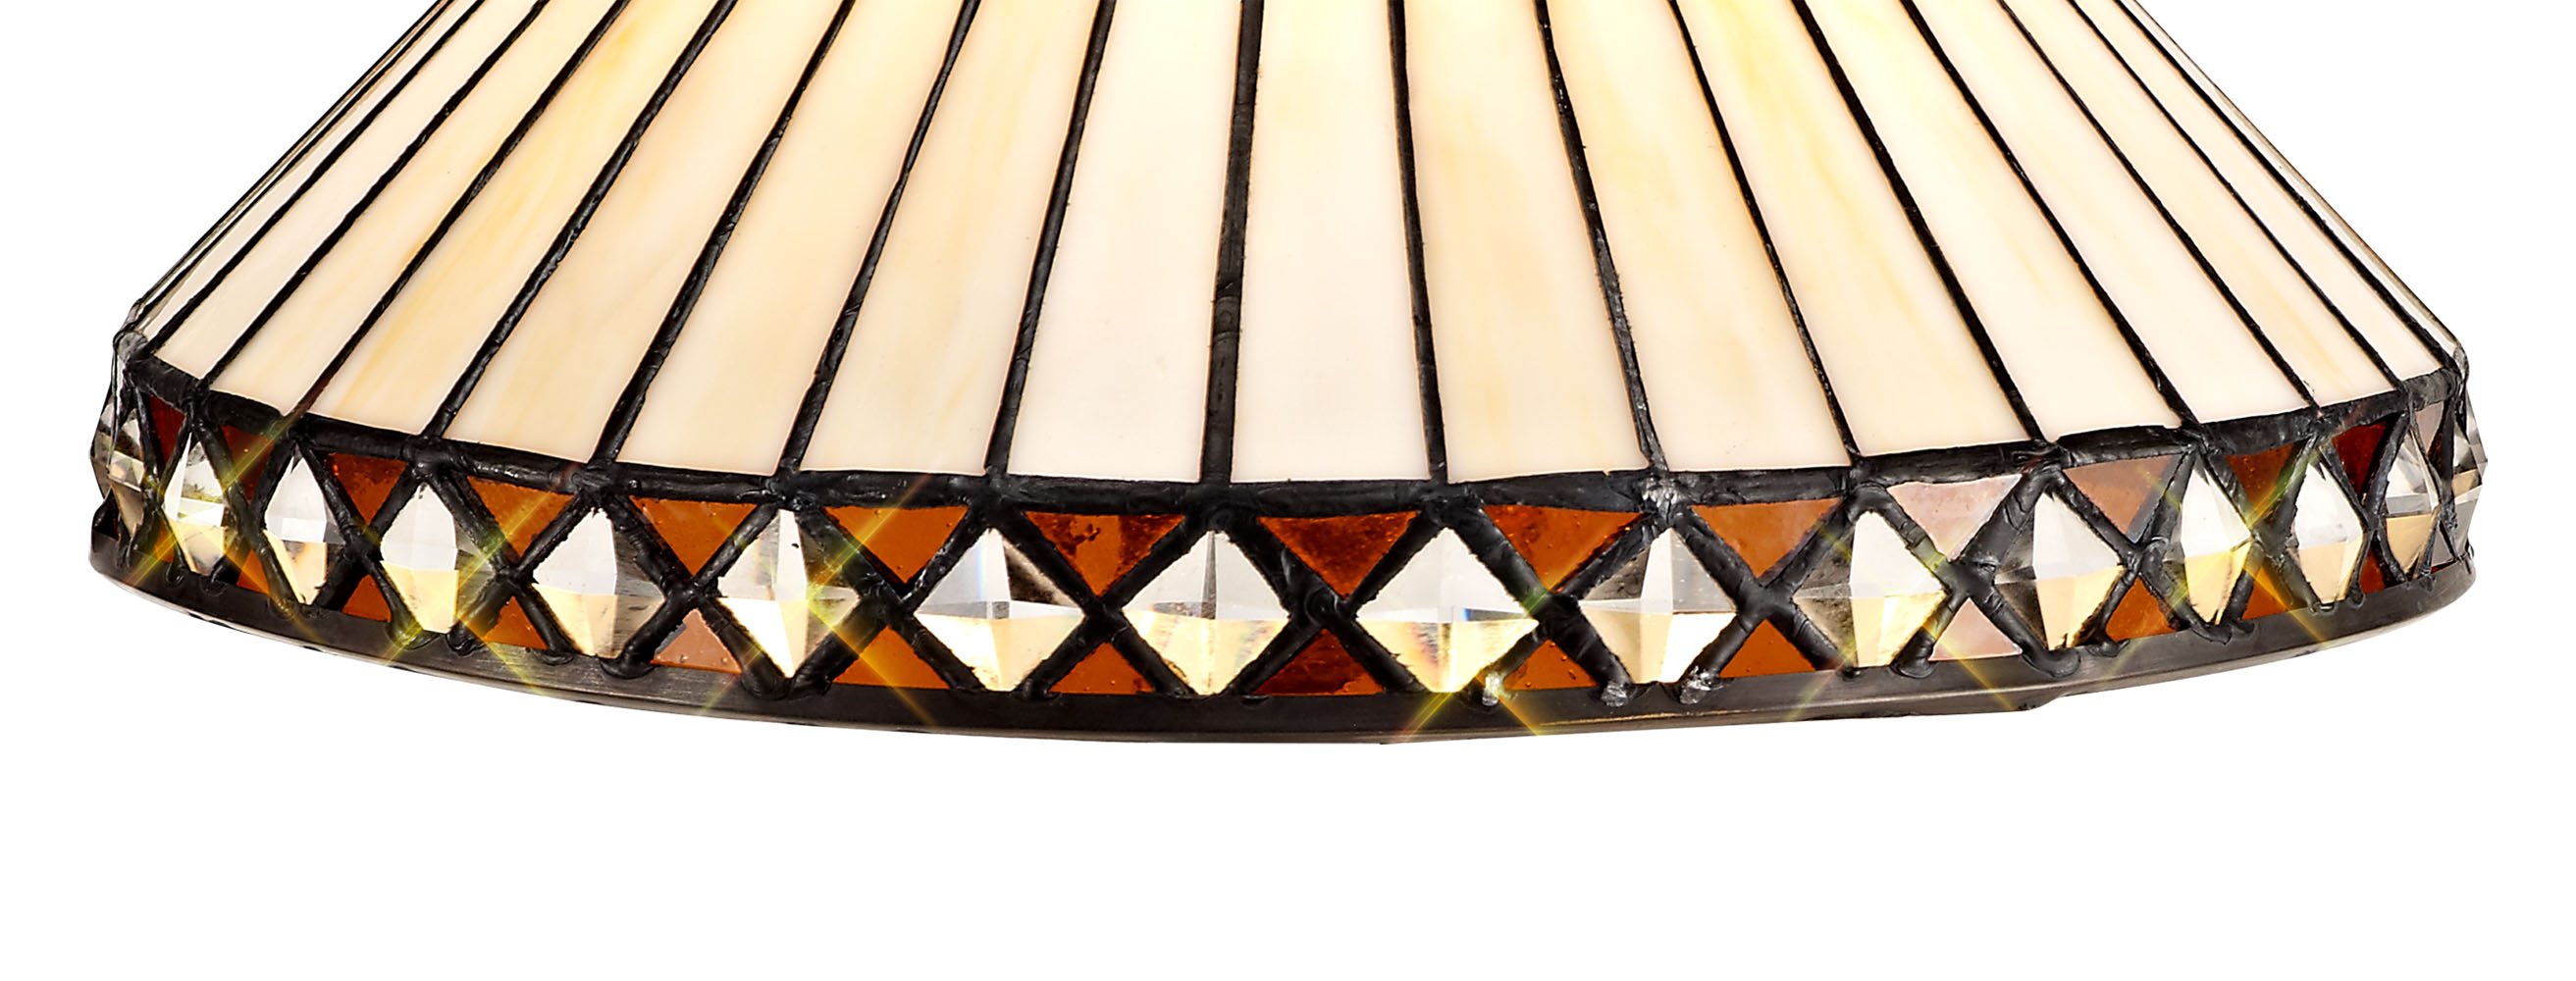 2 Light Uplighter Pendant E27 With 30cm Tiffany Shade, Amber/C/Crystal/Aged Antique Brass